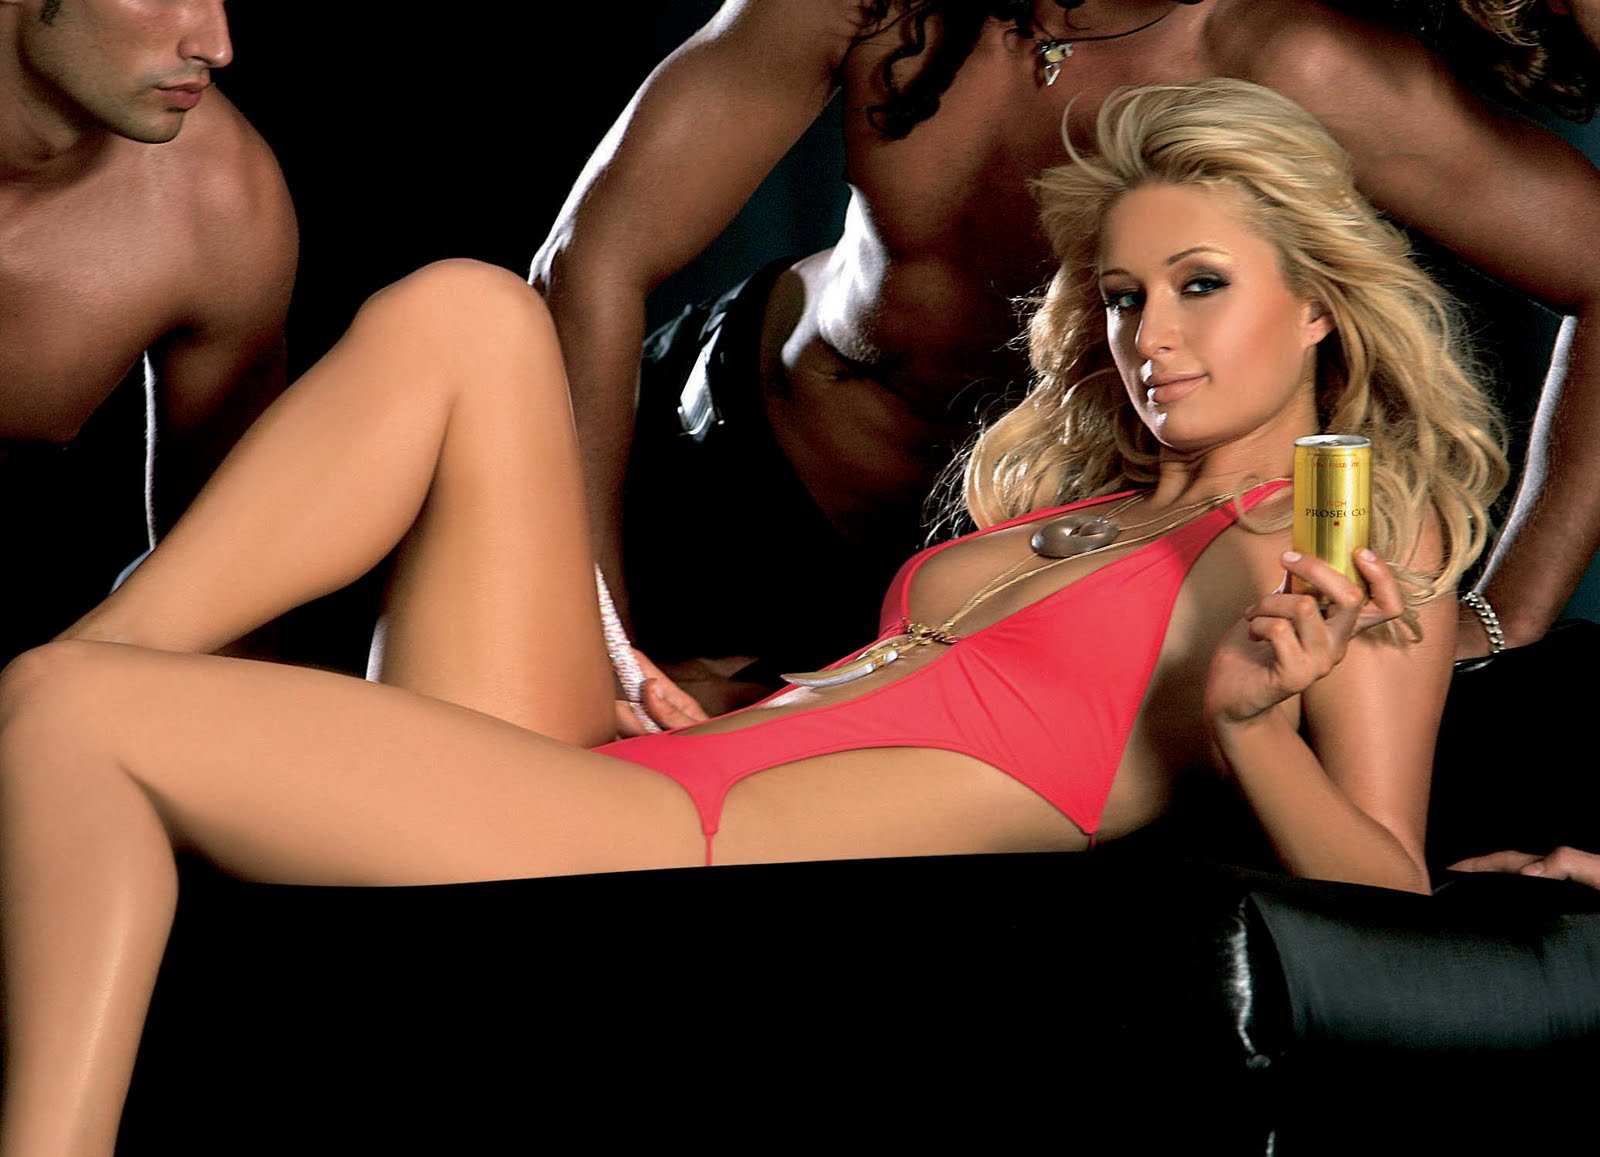 Paris hilton hot sex